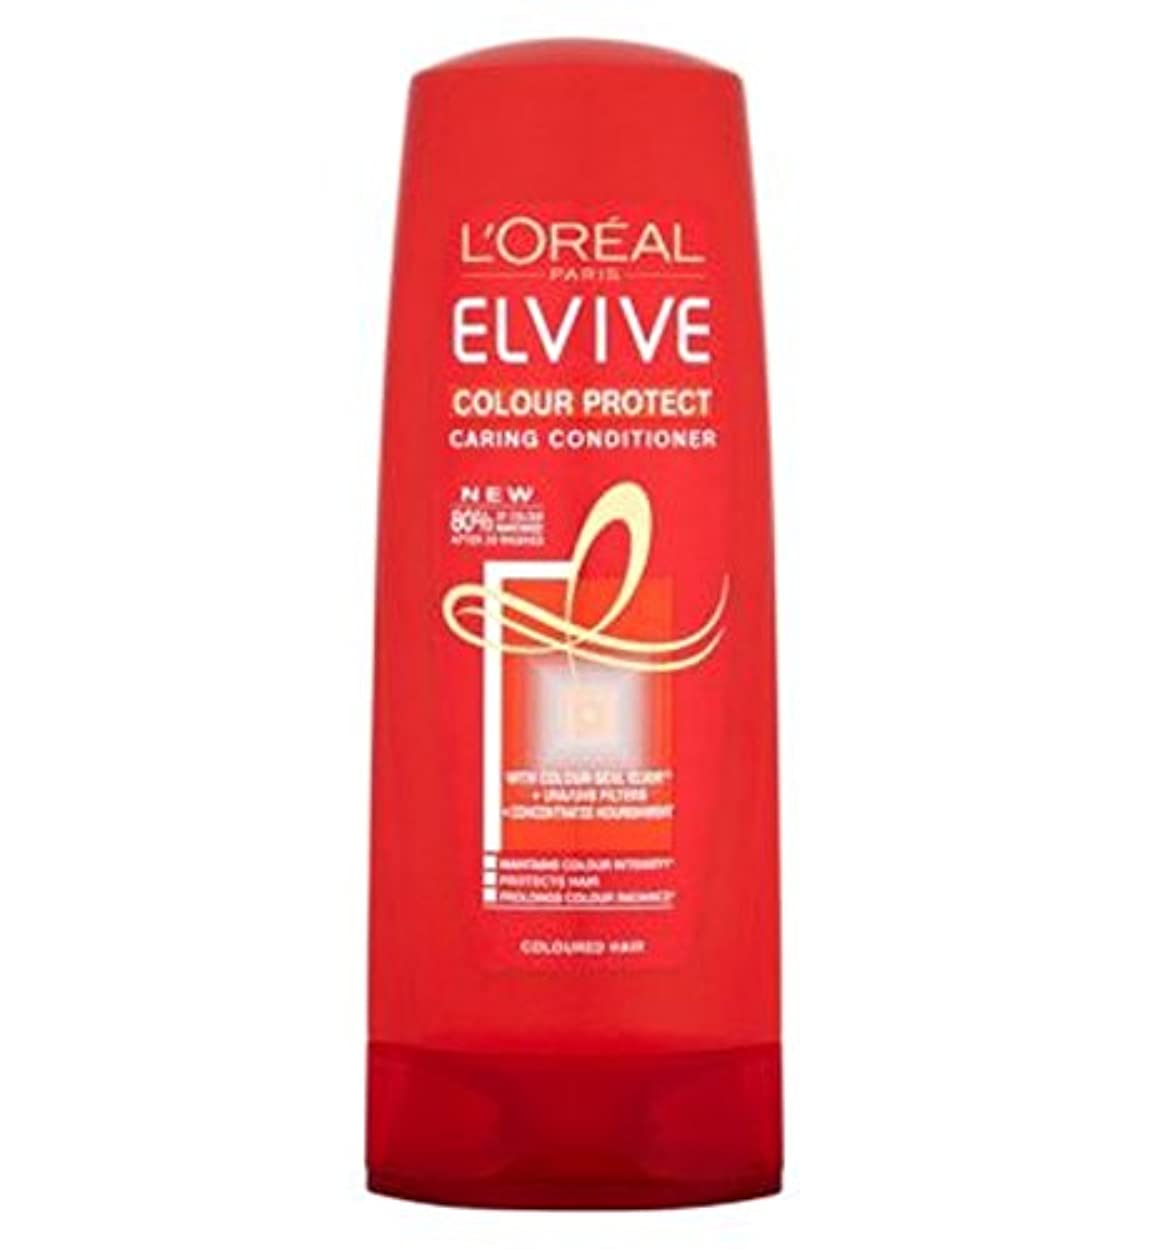 L'Oreall Elvive Colour Protect Conditioner 400ml - L'Oreall Elviveカラーコンディショナー400ミリリットルを保護 (L'Oreal) [並行輸入品]